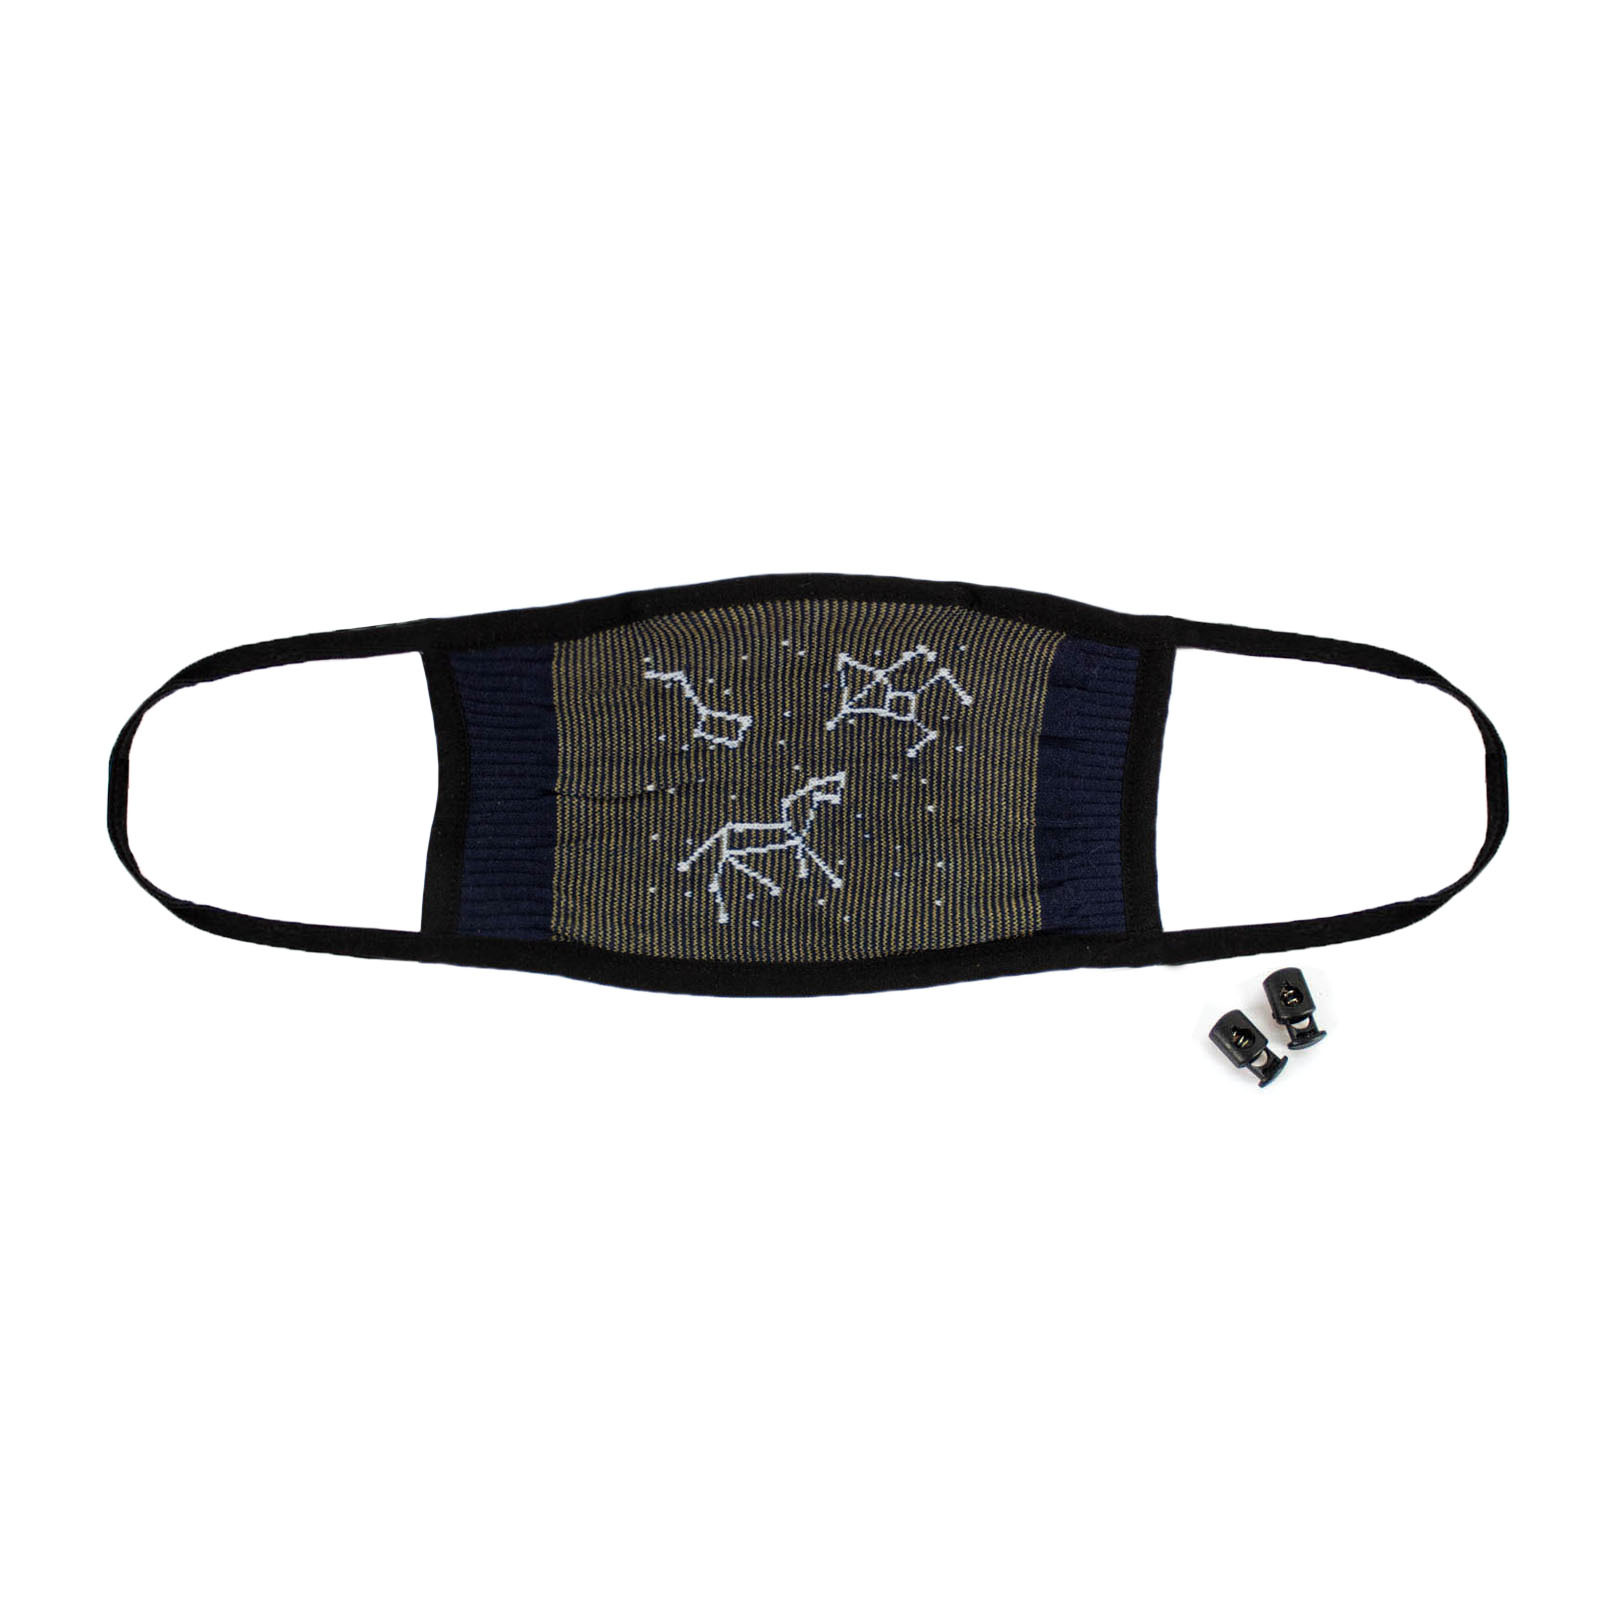 Stargazer - Constellation Face Masks Blue - Unisex in Navy